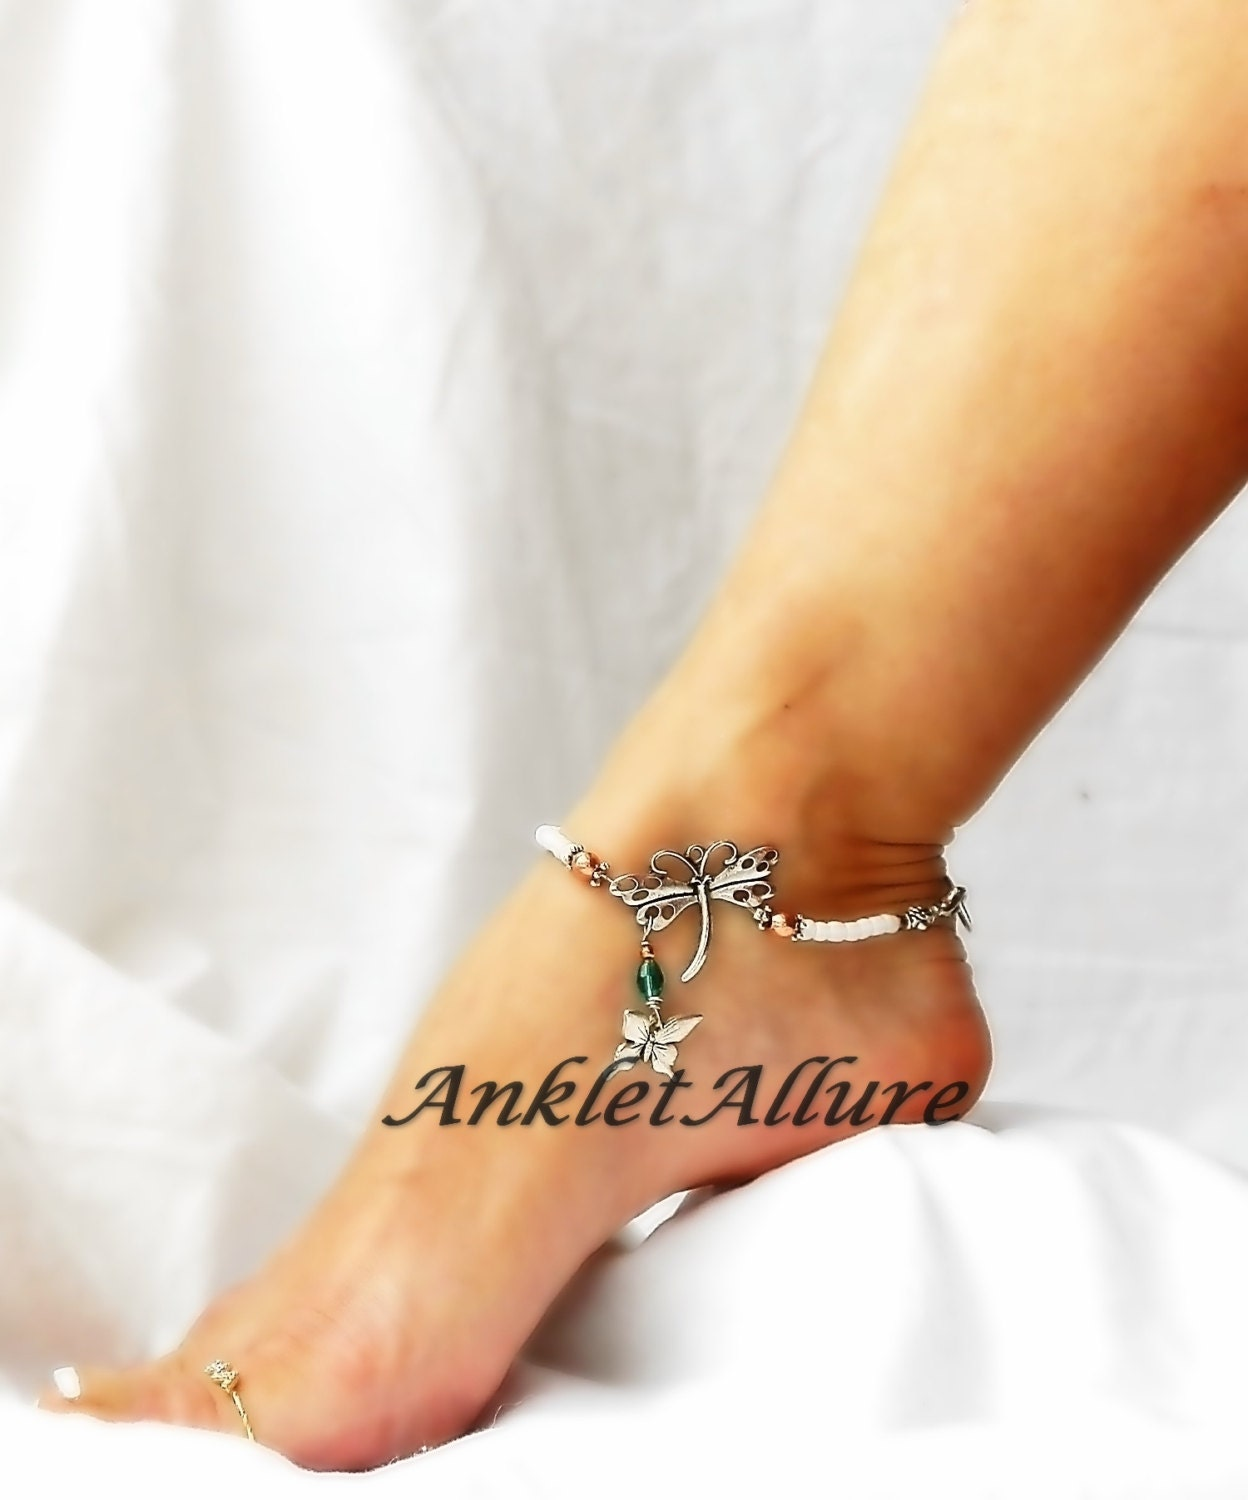 Diamond Ankle Bracelet Tattoo Tattoos 4life Tattoos 4: Me N My Shadow Butterfly Anklet Dragonfly Ankle Bracelet